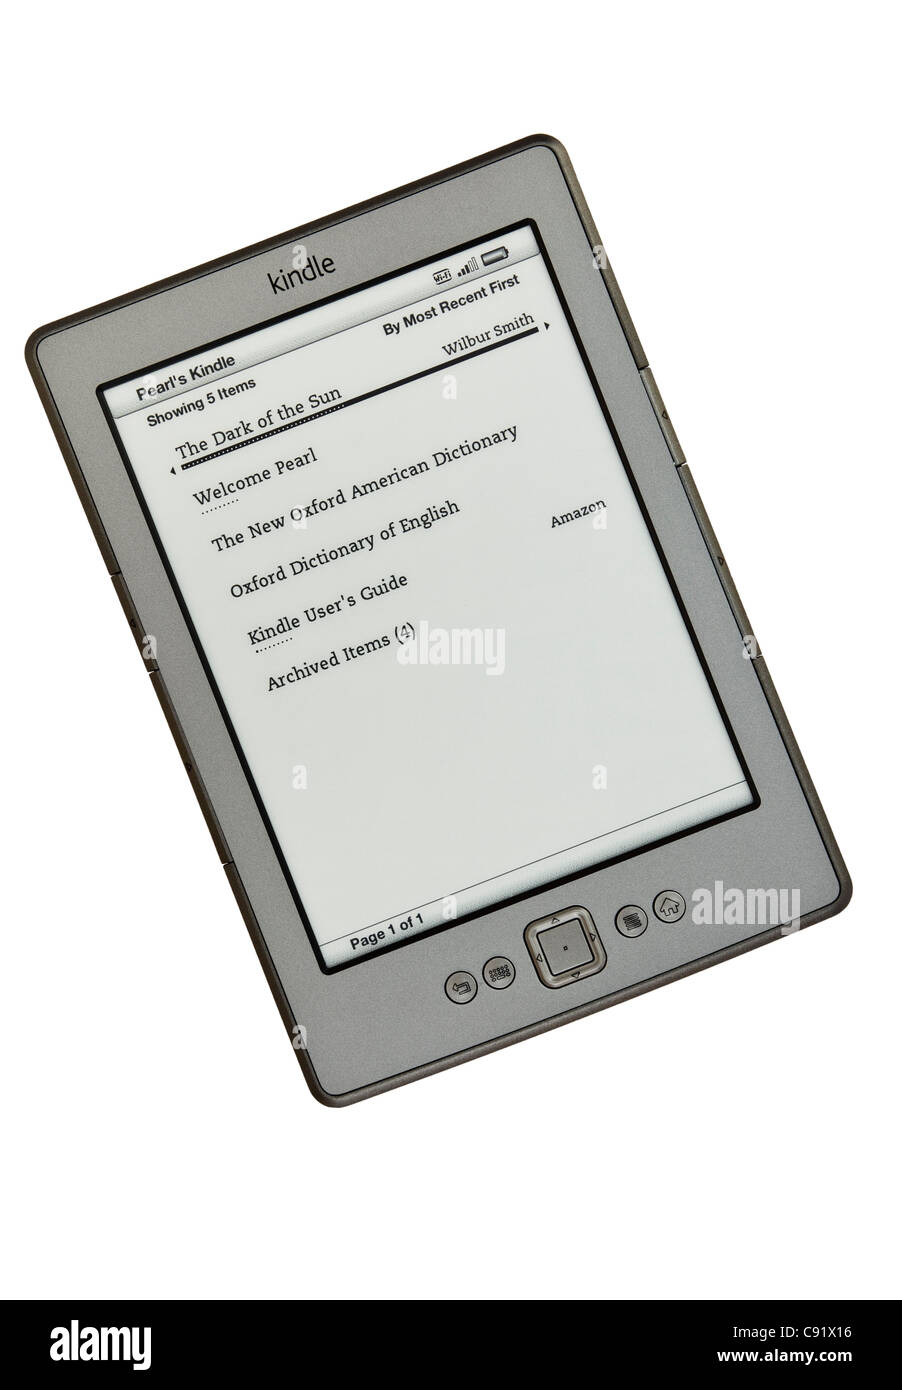 Nouveau Amazon Kindle wifi ebook reader livres liste page sur un fond blanc. En Angleterre, Royaume-Uni, Angleterre Photo Stock